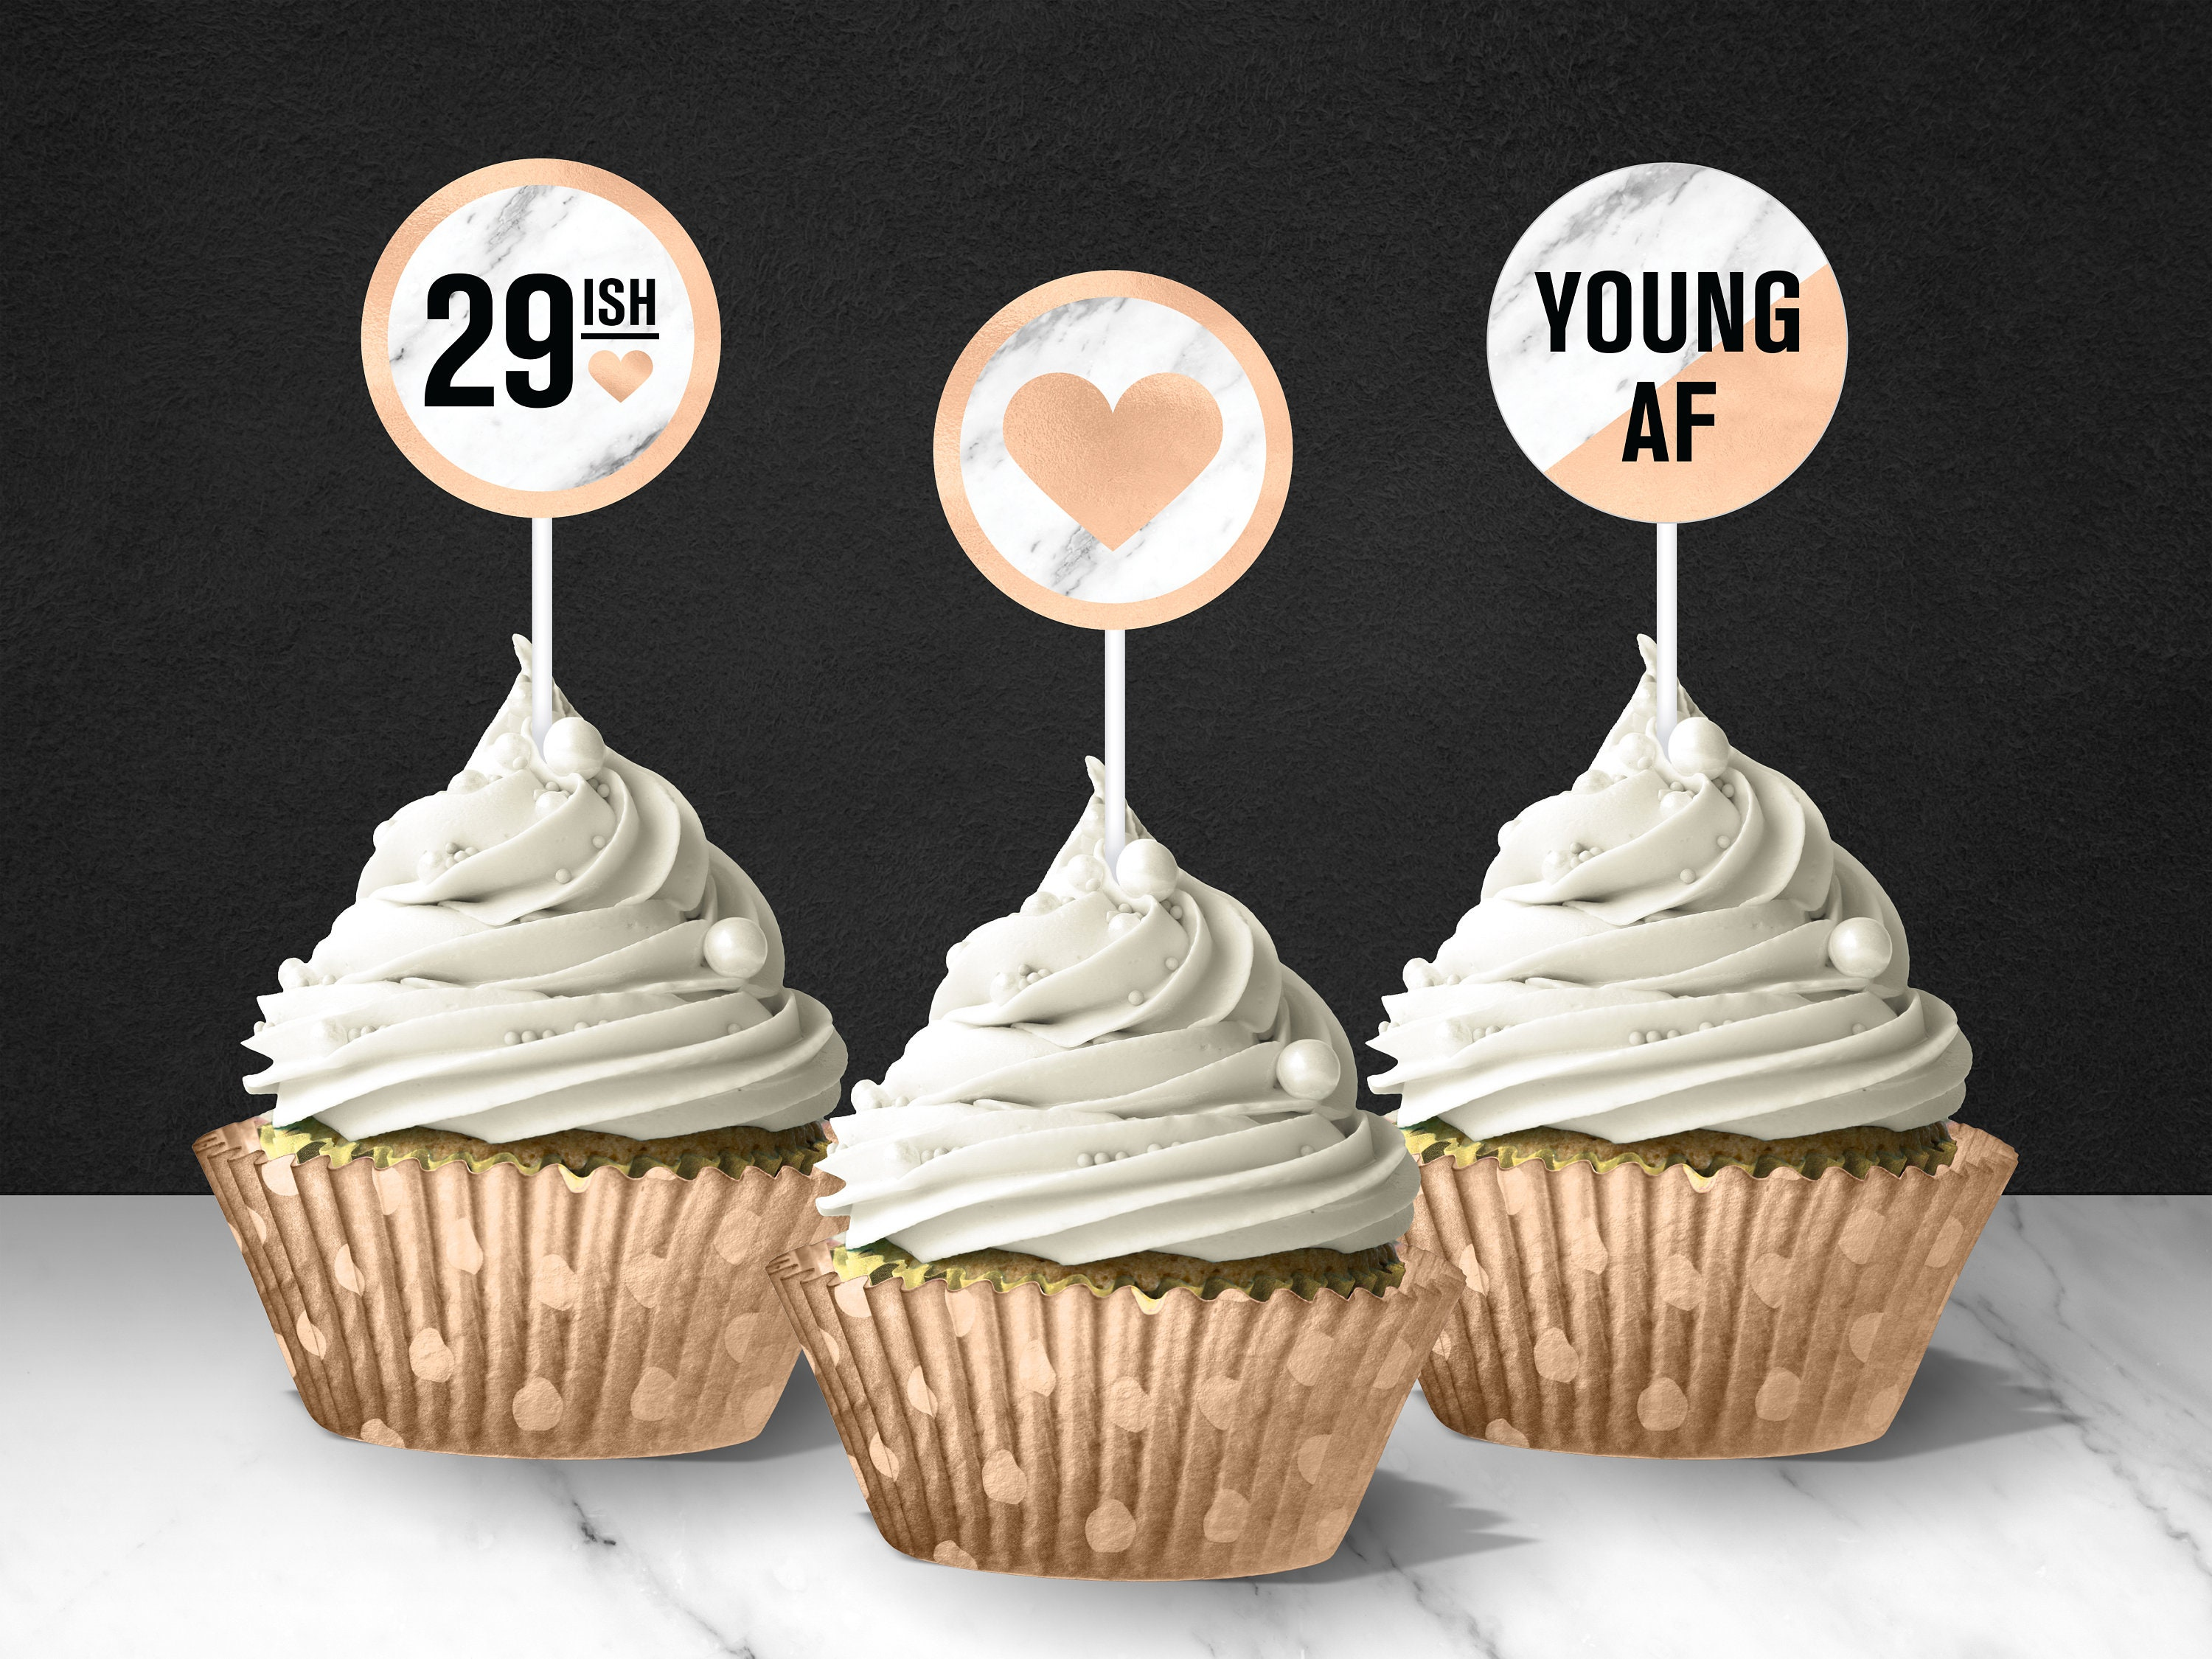 graphic about Printable Cupcake Toppers titled Rose Gold 30th Birthday Printable Cupcake Toppers // Printable Rose Gold Toppers // 30th Birthday Celebration Decor // More youthful AF Occasion Decor